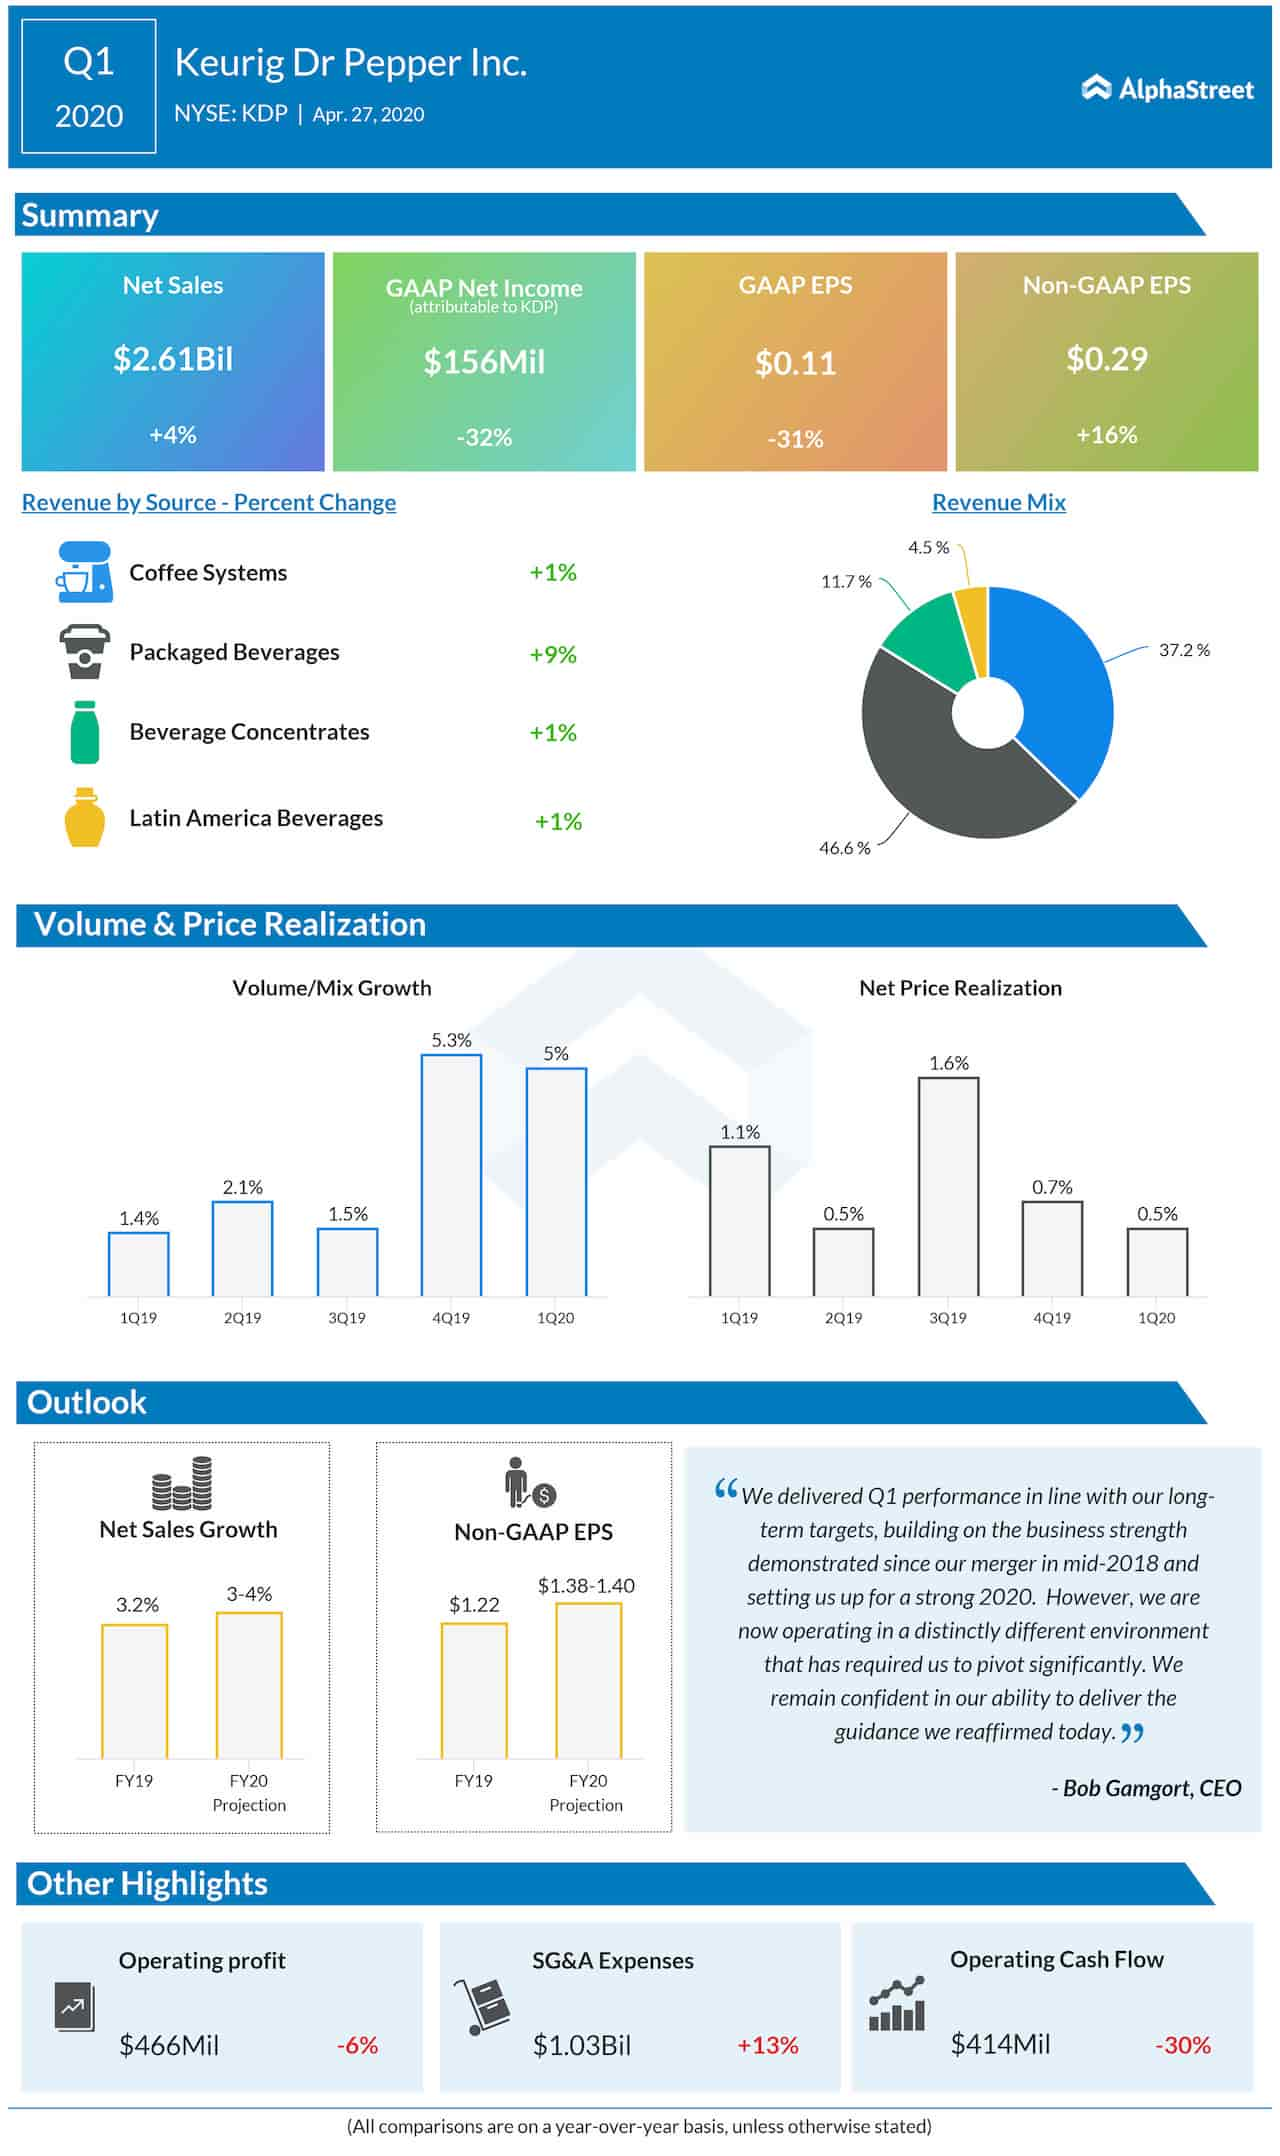 Keurig Dr Pepper Q1 2020 Earnings Infographic